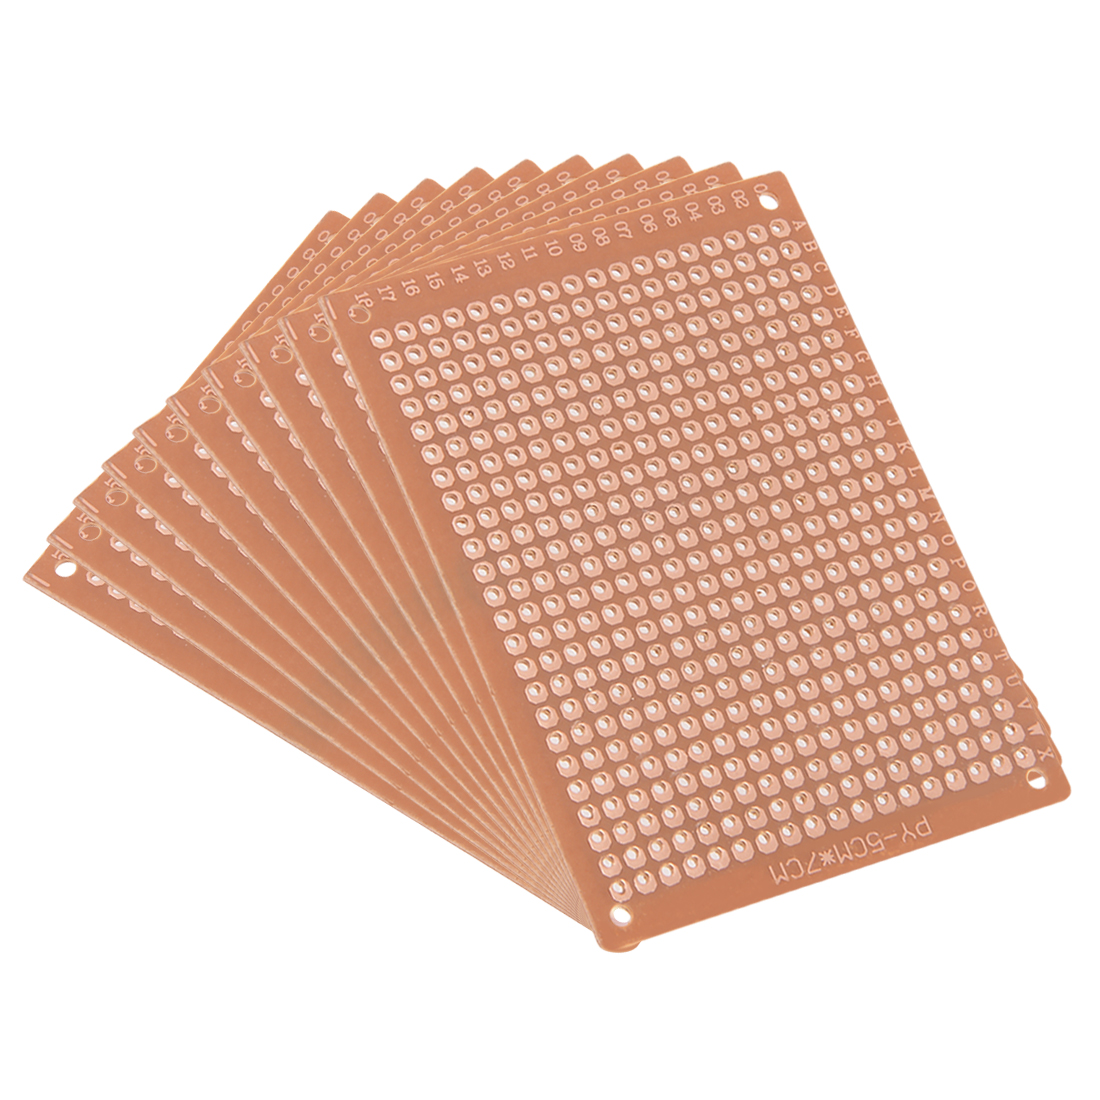 5x7cm Single Sided Universal Paper Printed Circuit Board for DIY Soldering 10pcs